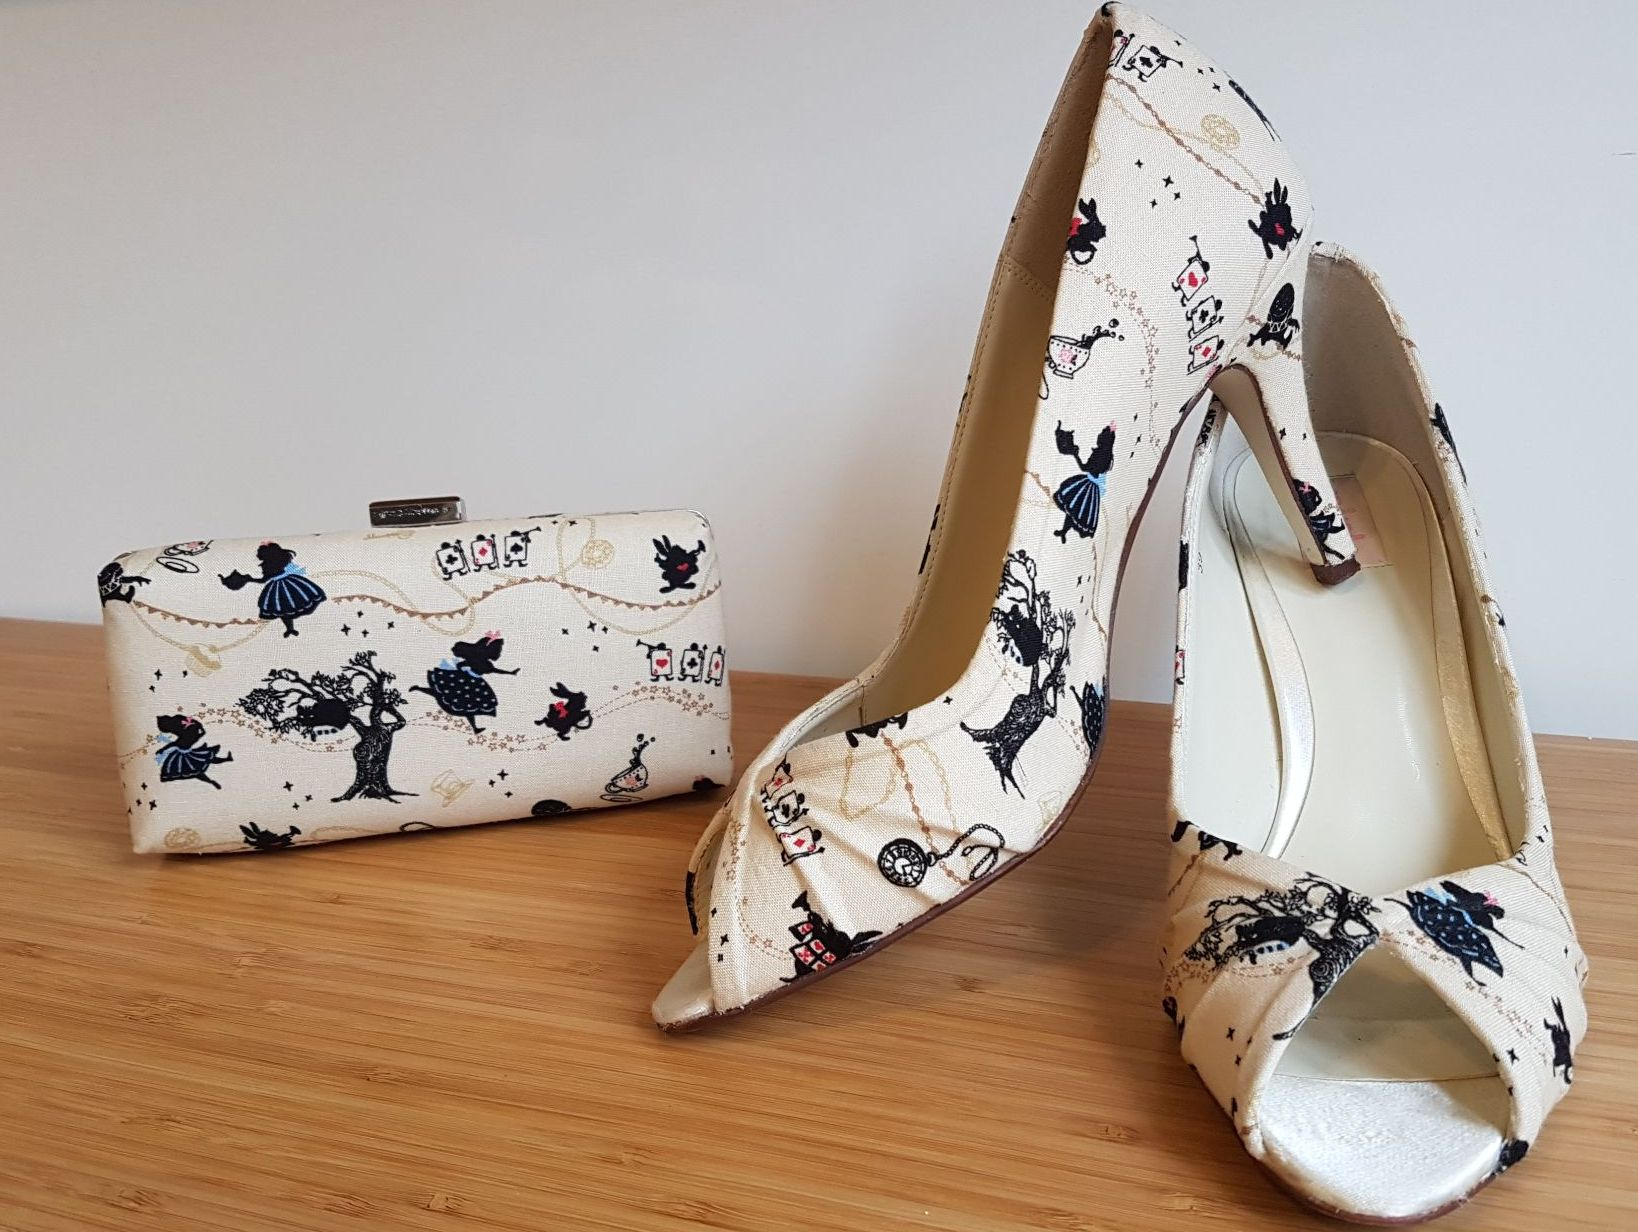 Alice in wonderland shoes & matching bag